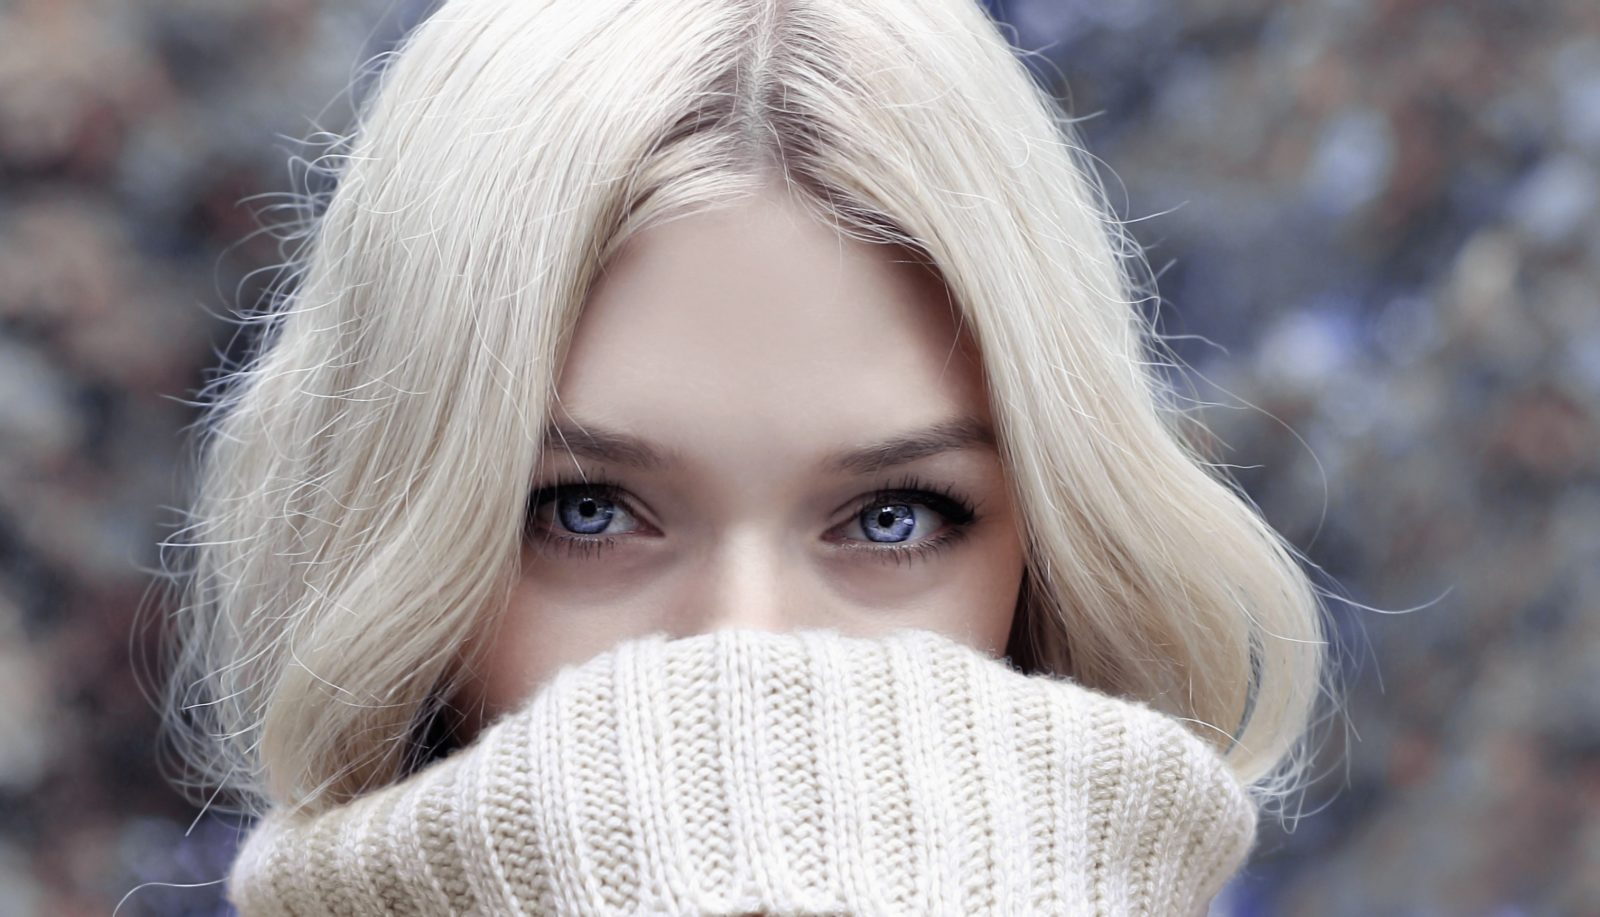 Great eyes over cowled sweater